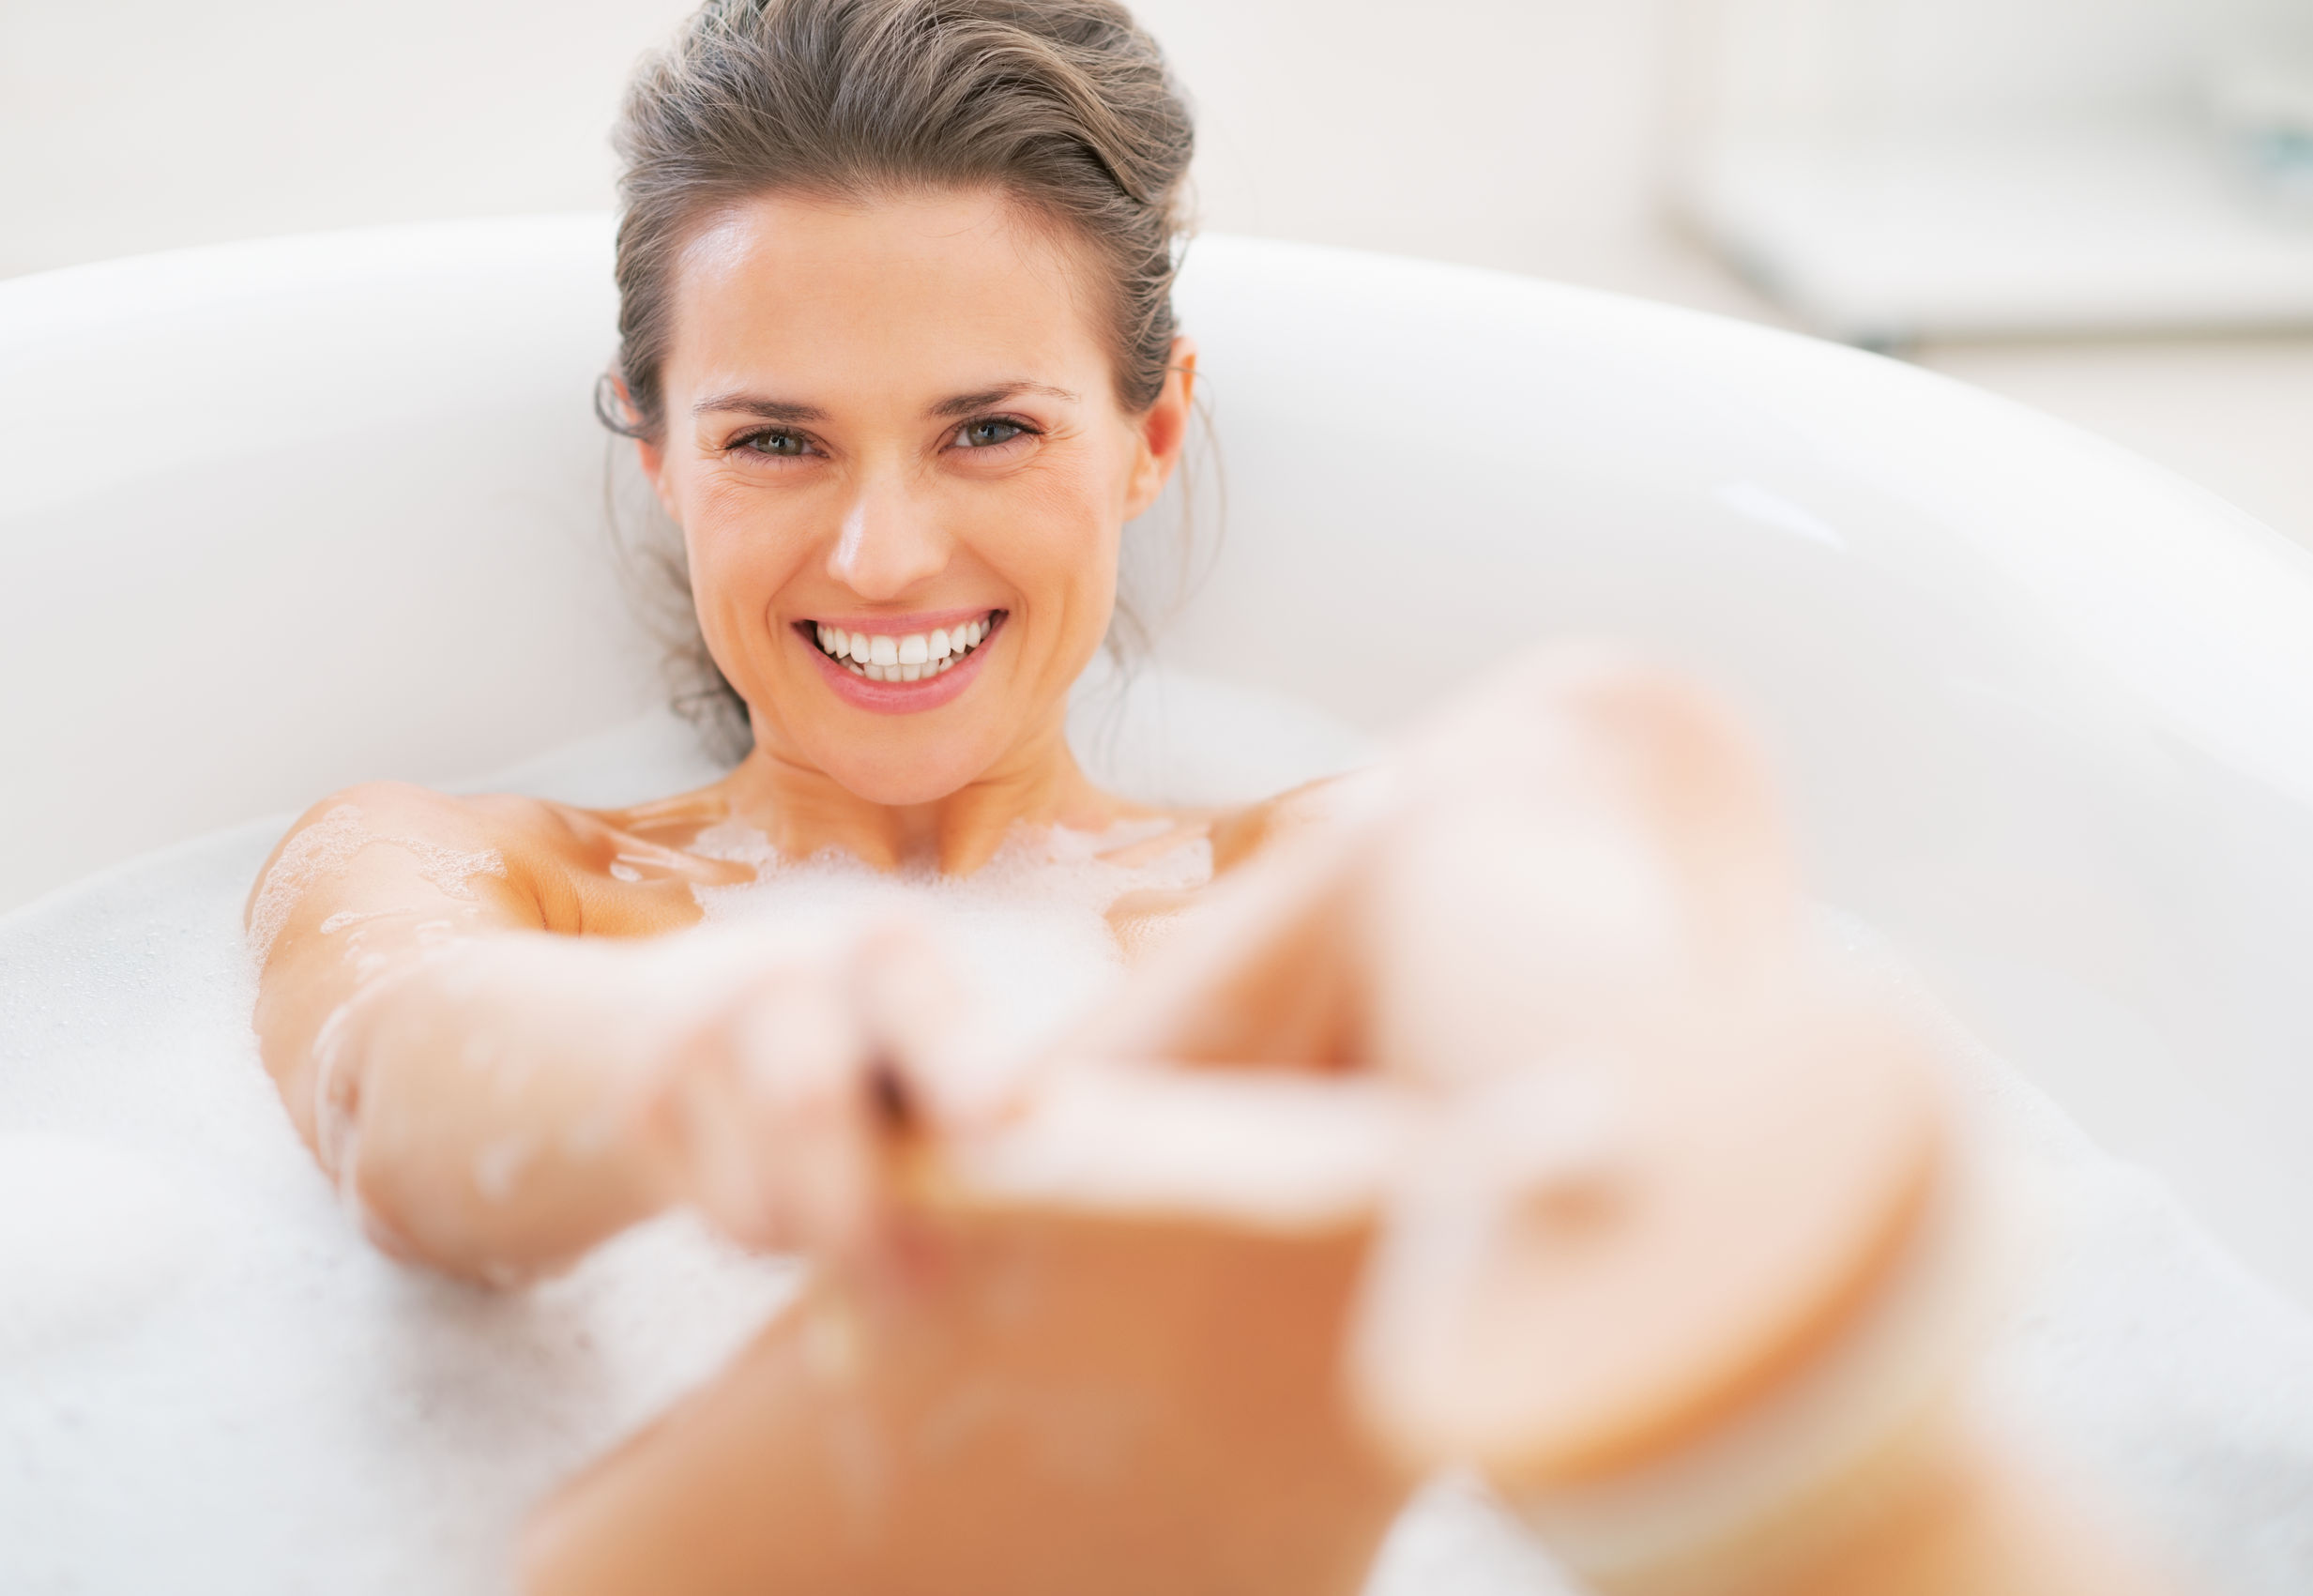 24824087 - smiling young woman washing with body brush in bathtub